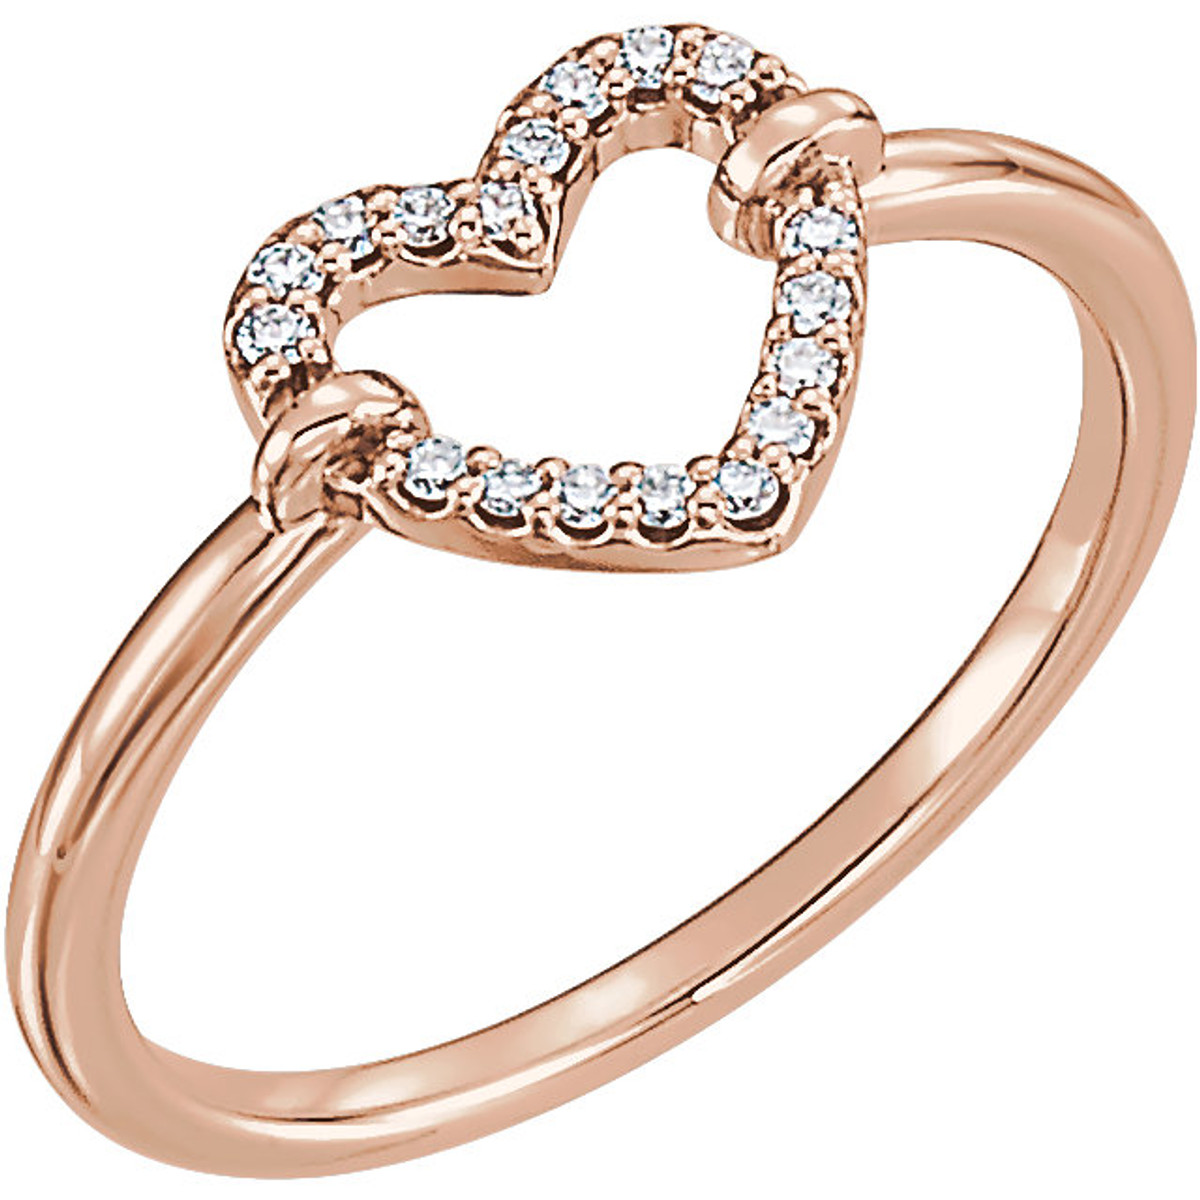 Rose Gold Petite Diamond Heart Ring